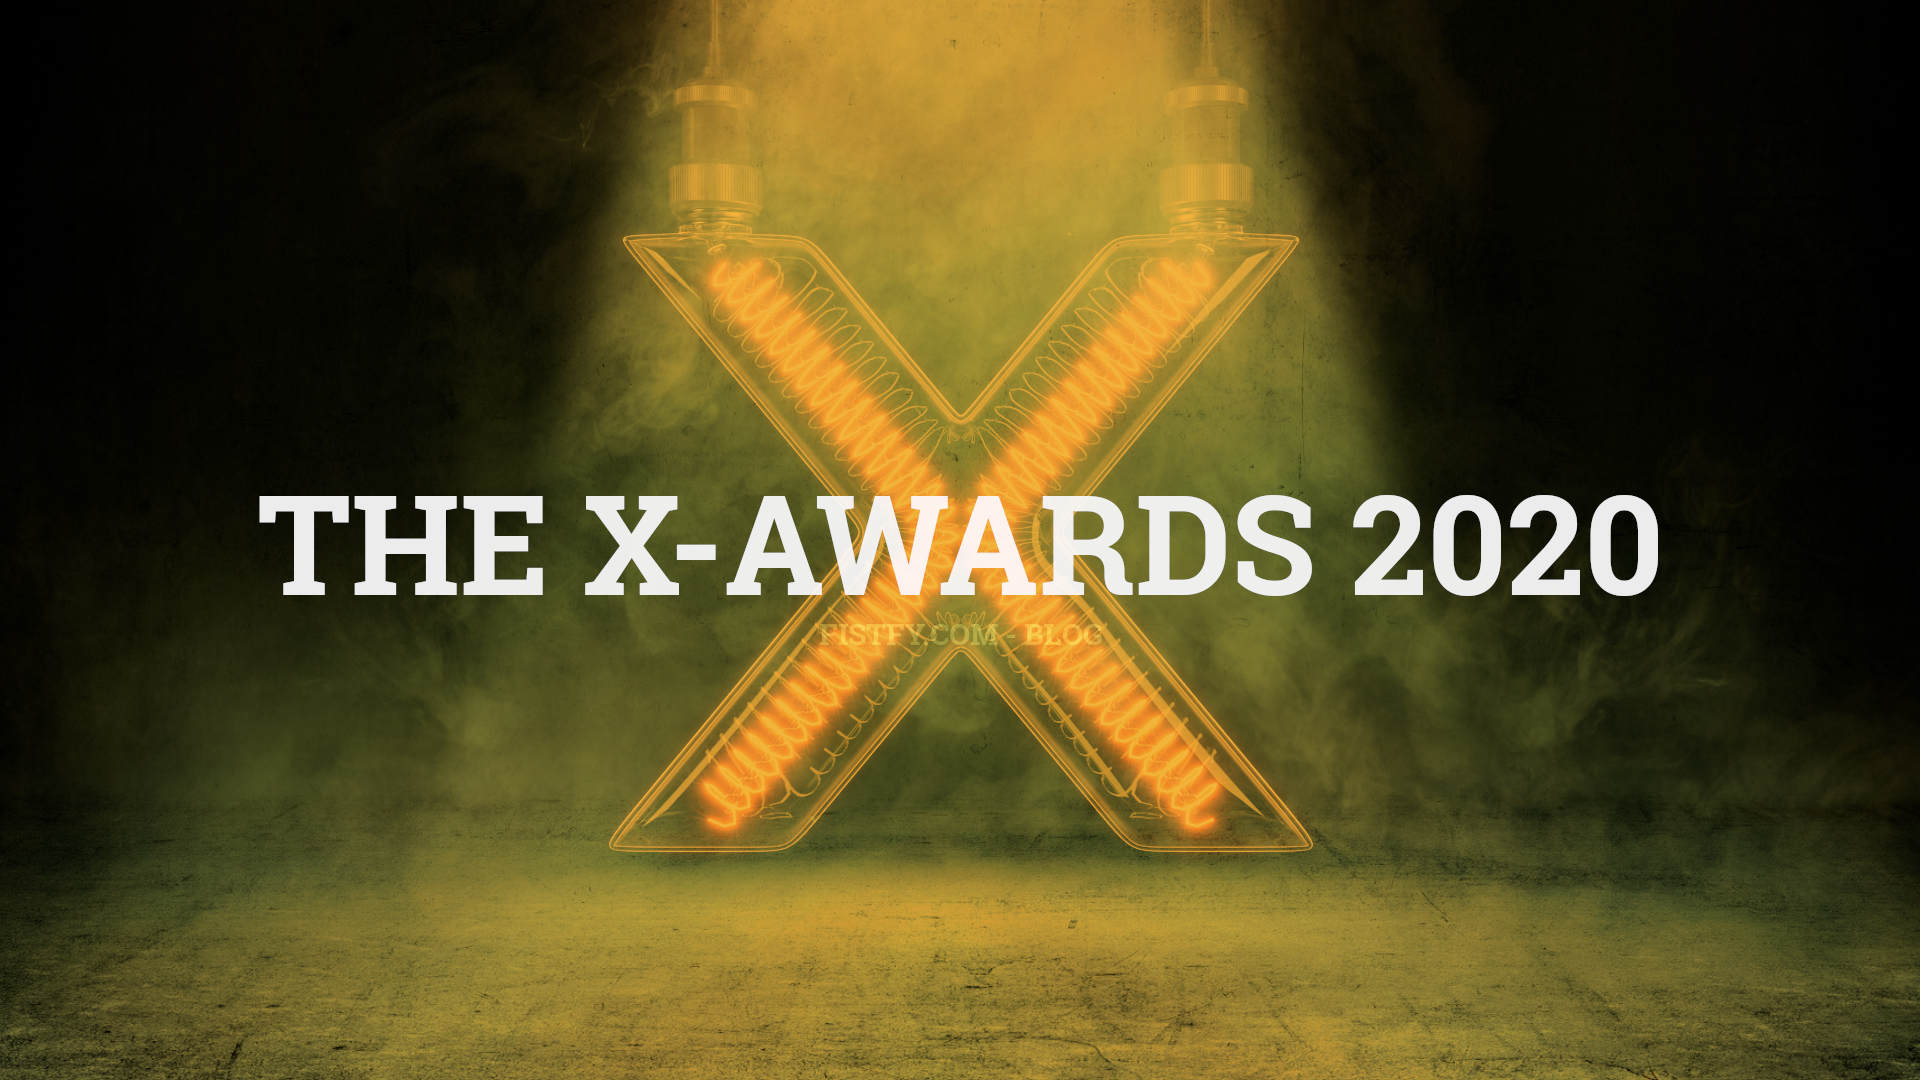 THE X-AWARDS 2020